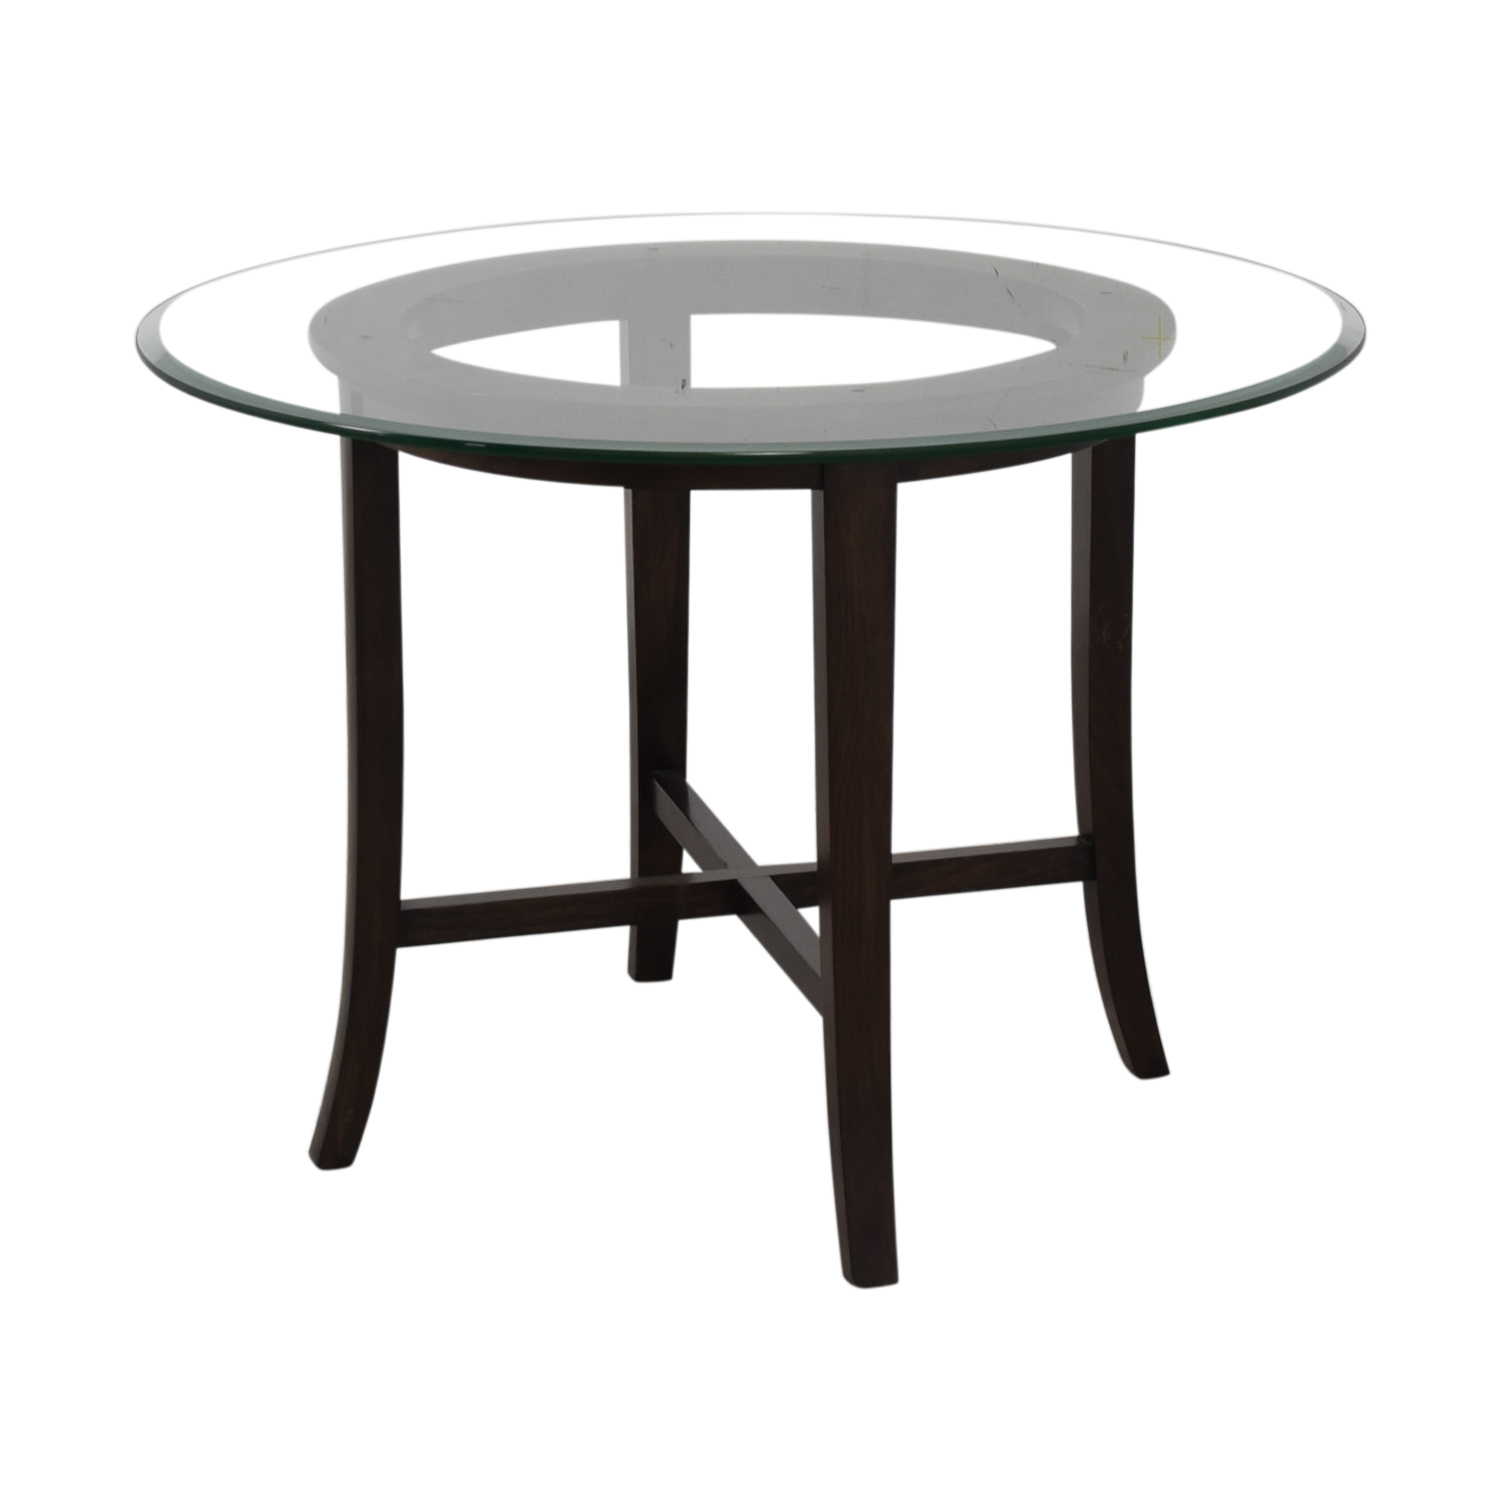 shop Crate & Barrel Halo Glass and Wood Dining Table Crate & Barrel Tables